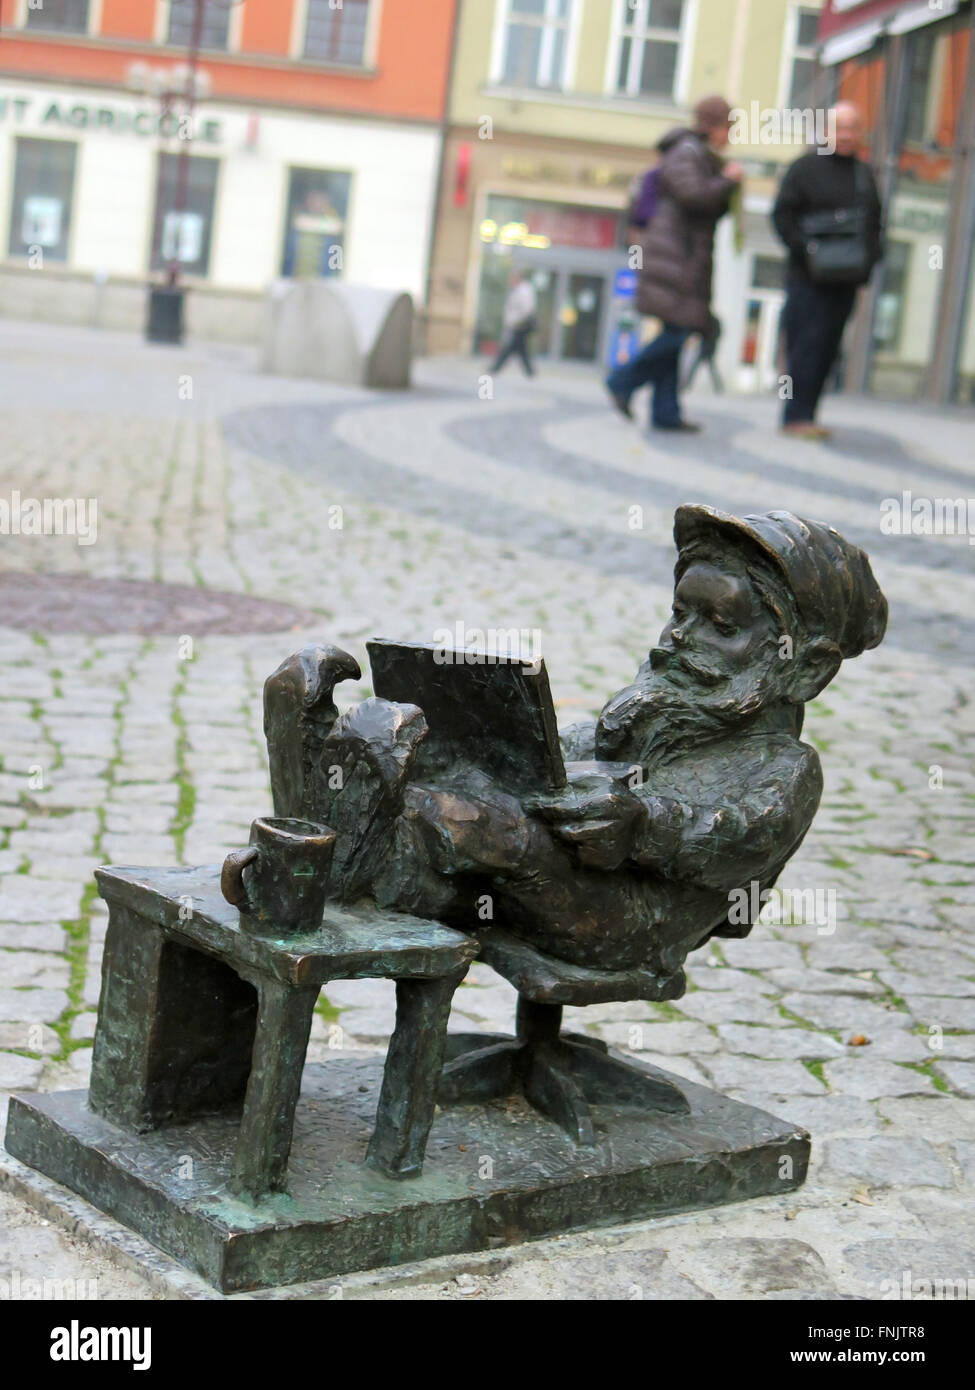 The dwarf 'Capgeminiusz Programista', a kind of IT dwarf, in Wroclaw, Poland, photographed in January 2016. - Stock Image